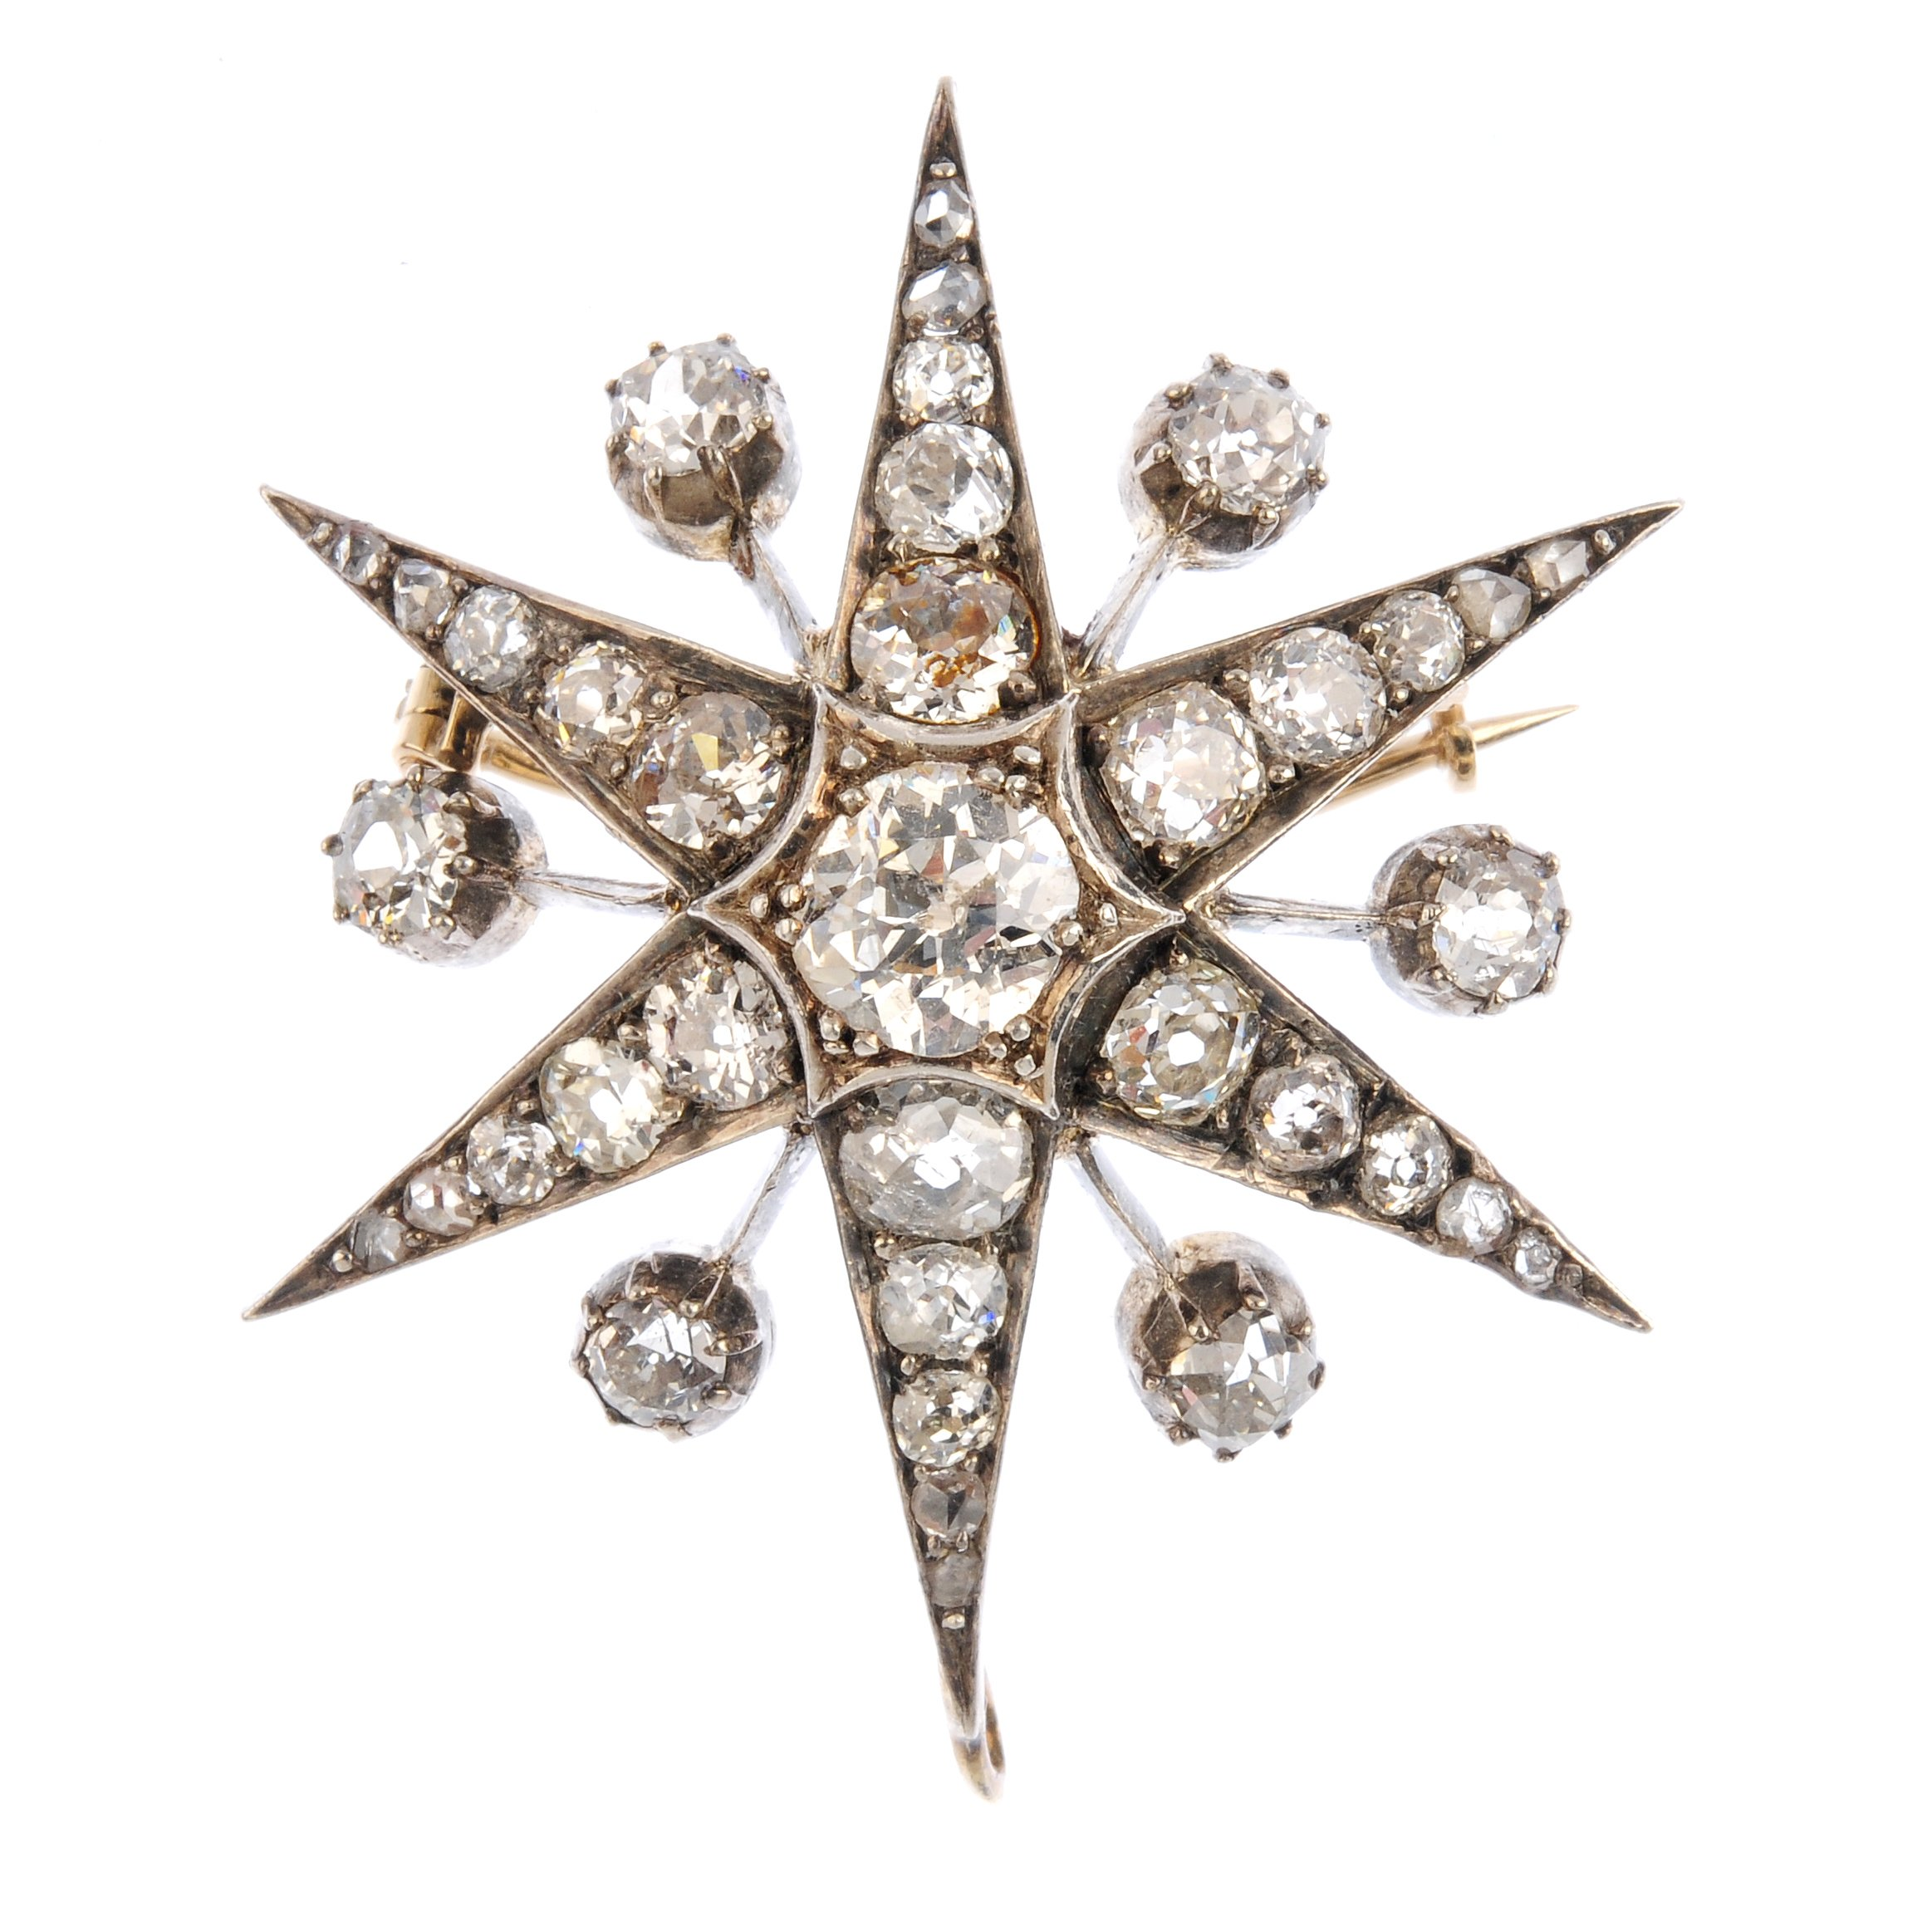 "<a href=""https://www.fellows.co.uk/2104-lot-407-A-late-Victorian-diamond-star-brooch?utm_source=Ageless%20Heirlooms&utm_medium=blog&utm_campaign=Ageless%20Heirlooms%20Vintage&utm_content=Blog%20and%20social"">LOT 407</a>"